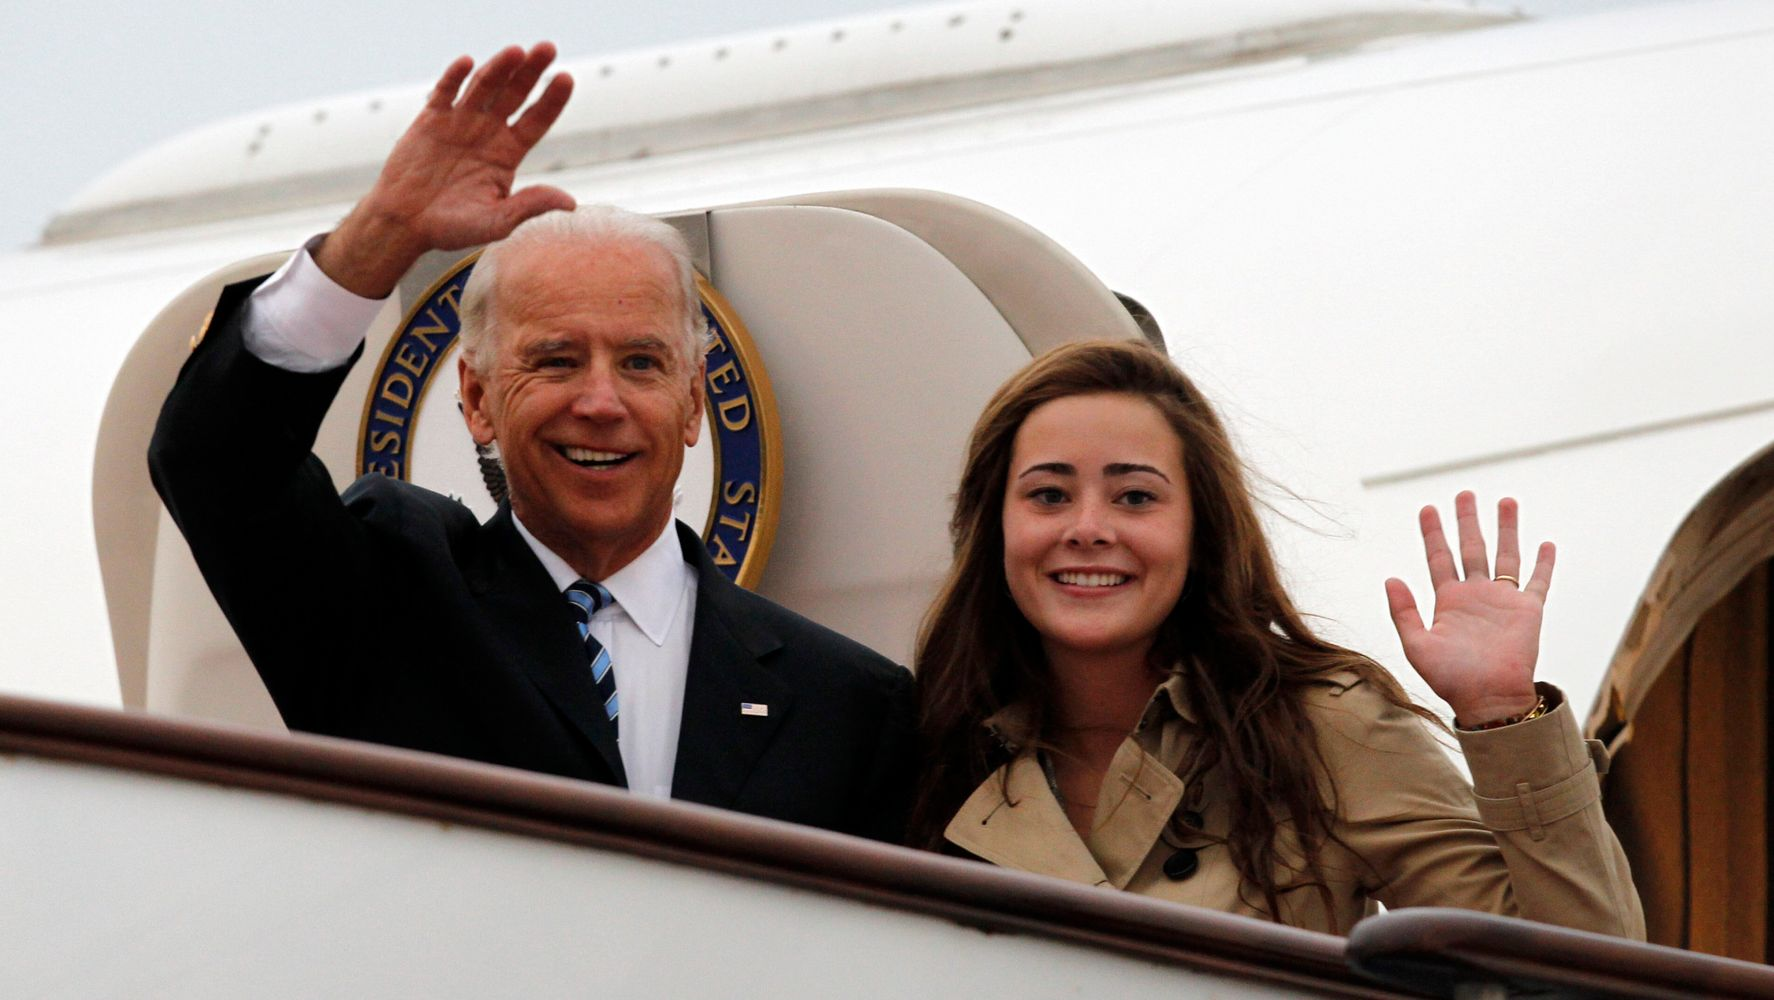 Naomi Biden Teases 'Pop' Joe After He Says He's Limiting Thanksgiving Guests